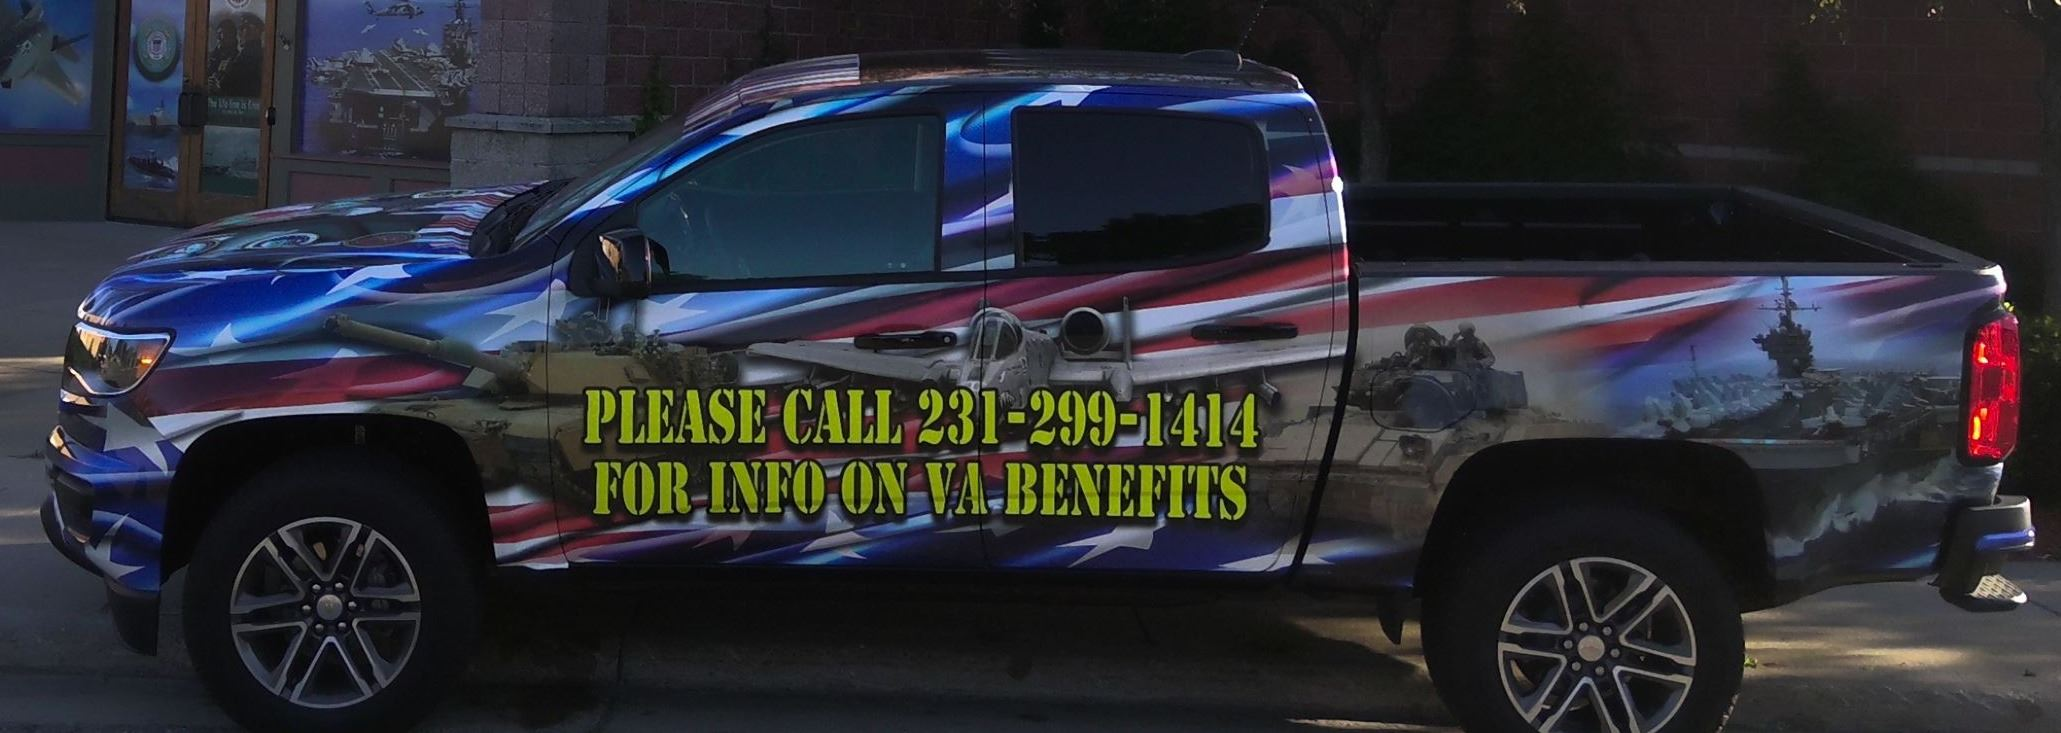 New Vehicle For Manistee Veterans Affairs